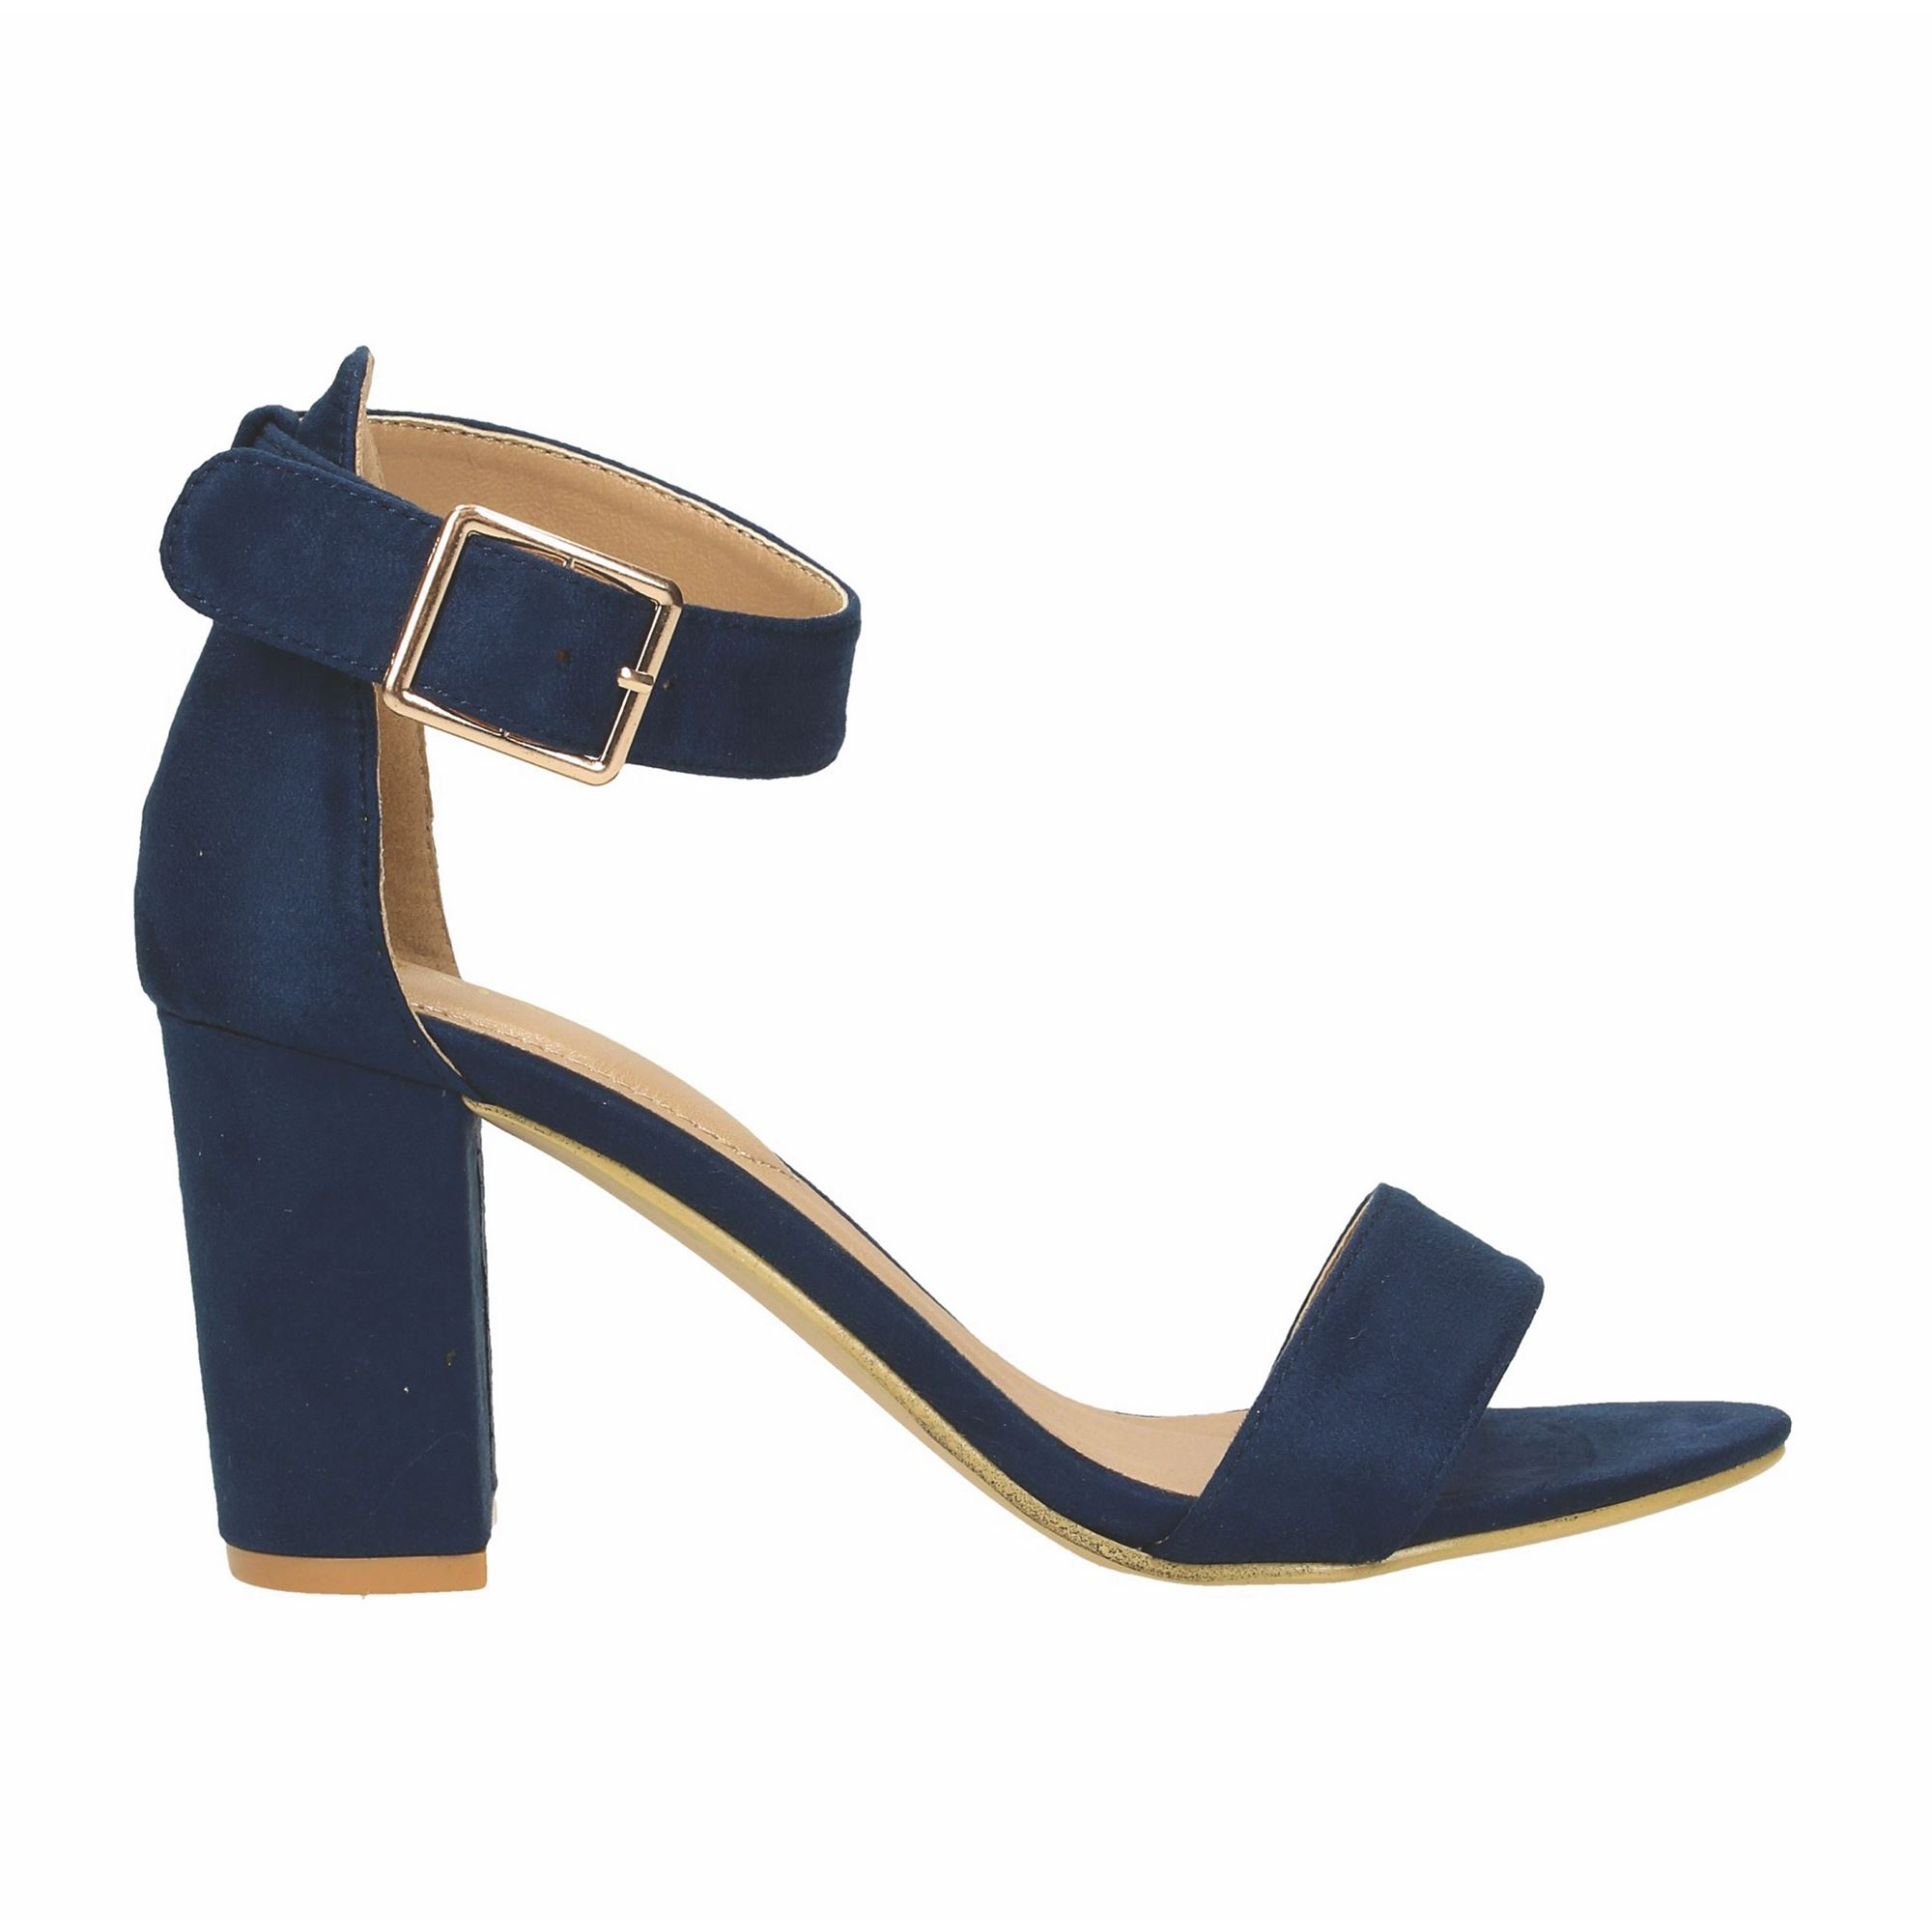 Tata Italia Shoes Woman Sandali Navy GF0415-139/E19